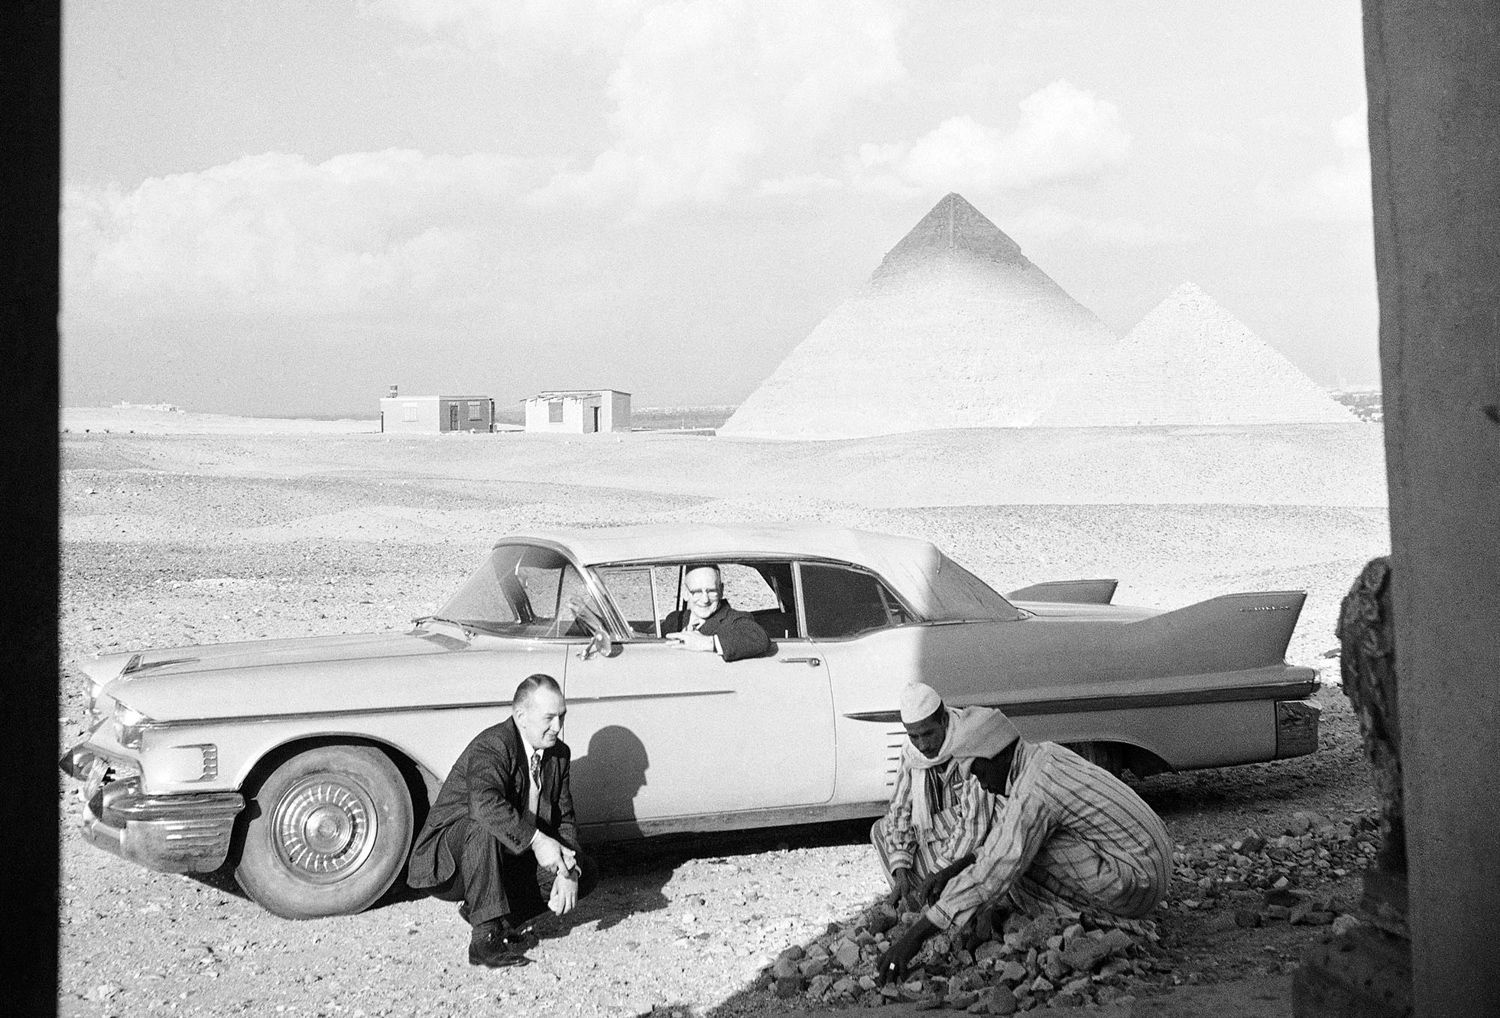 """From their Cadillac, Jack Carrigan (inside car) and Louis Miller Bailey, watch their two Egyptian servants clear away small stones in front of their retirement home at Giza, Egypt, on February 16, 1965. In the background are the famed 3,500-year-old pyramids which are their neighbors. The two men retired from Hollywood, California, to Egypt because they were tired of the film capital's """"lurid industrialization."""""""